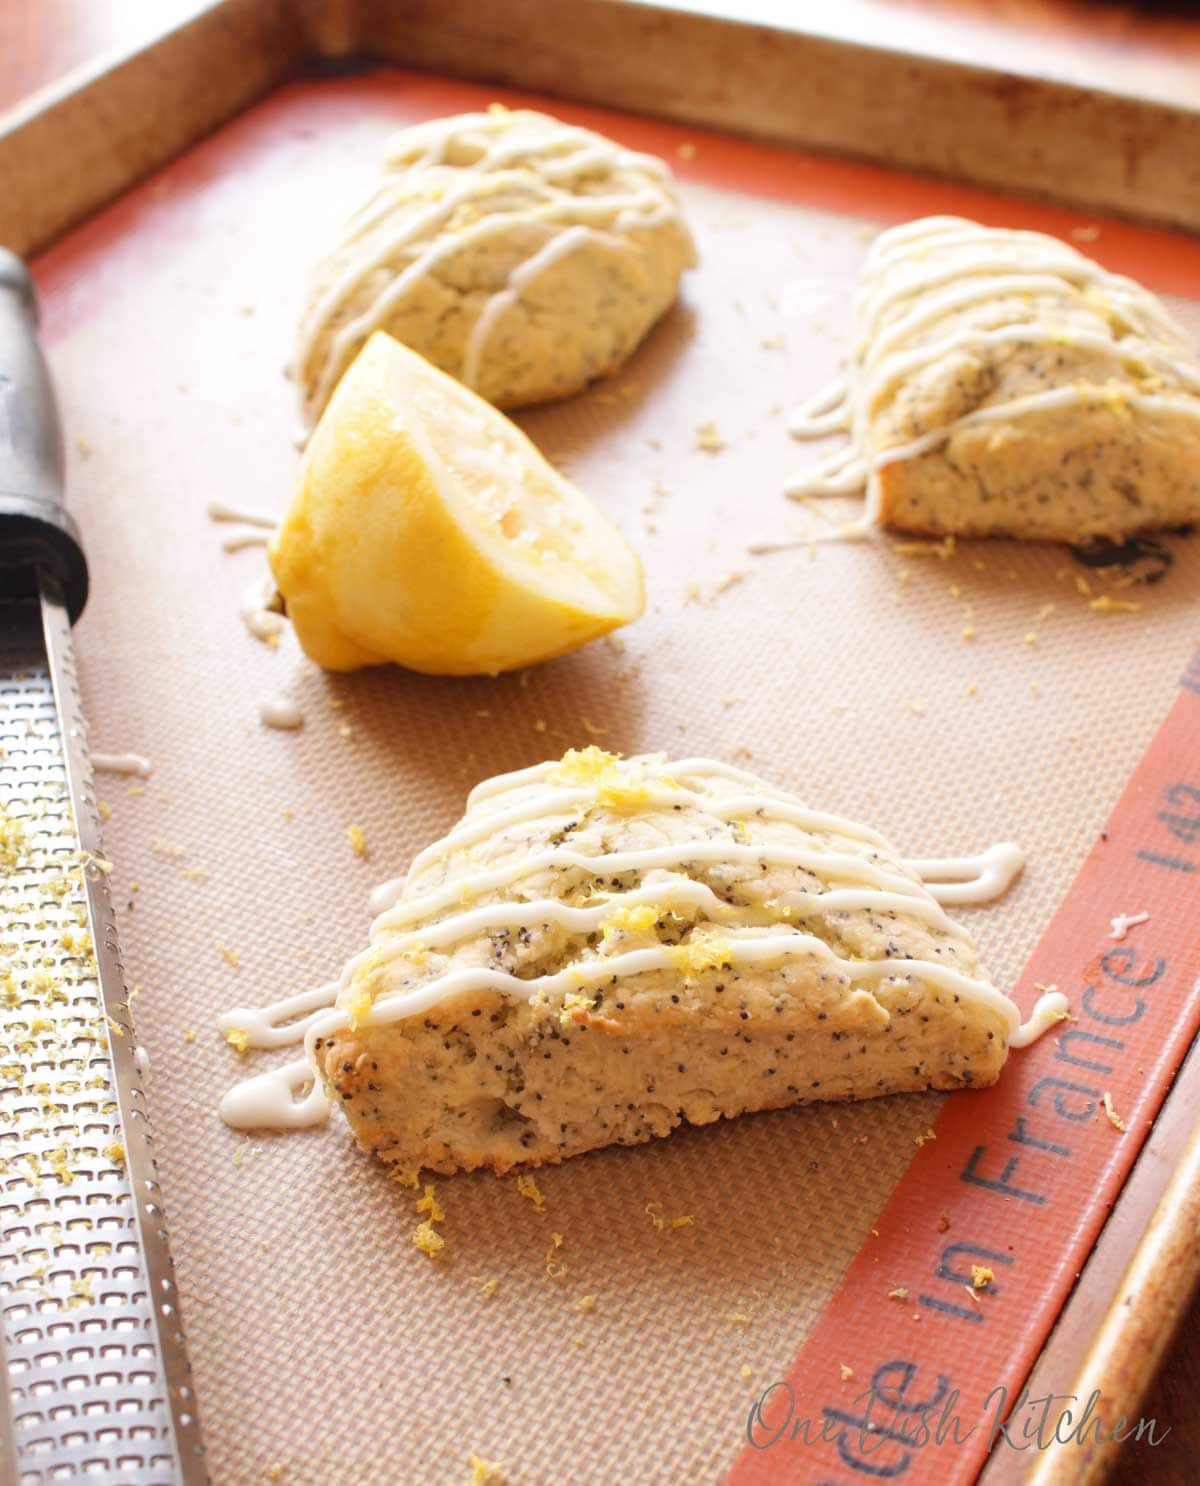 scones on a baking sheet next to a half of a lemon.